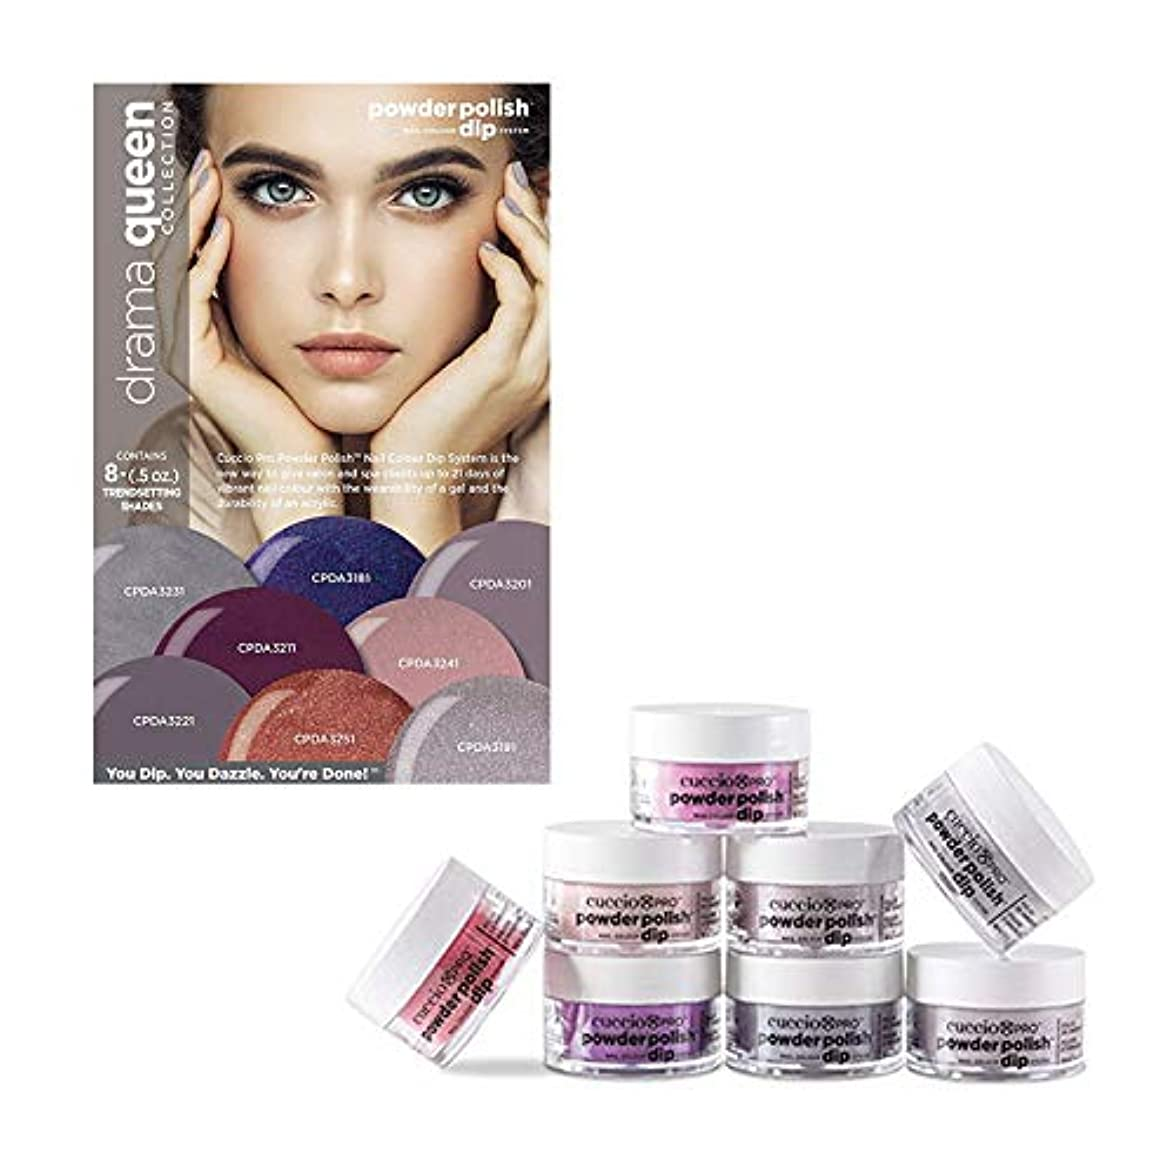 シーフード疑問に思う本土Cuccio Pro Powder Polish Dip System - Drama Queen Collection - 8 Piece Set - 0.5 oz / 14 g Each